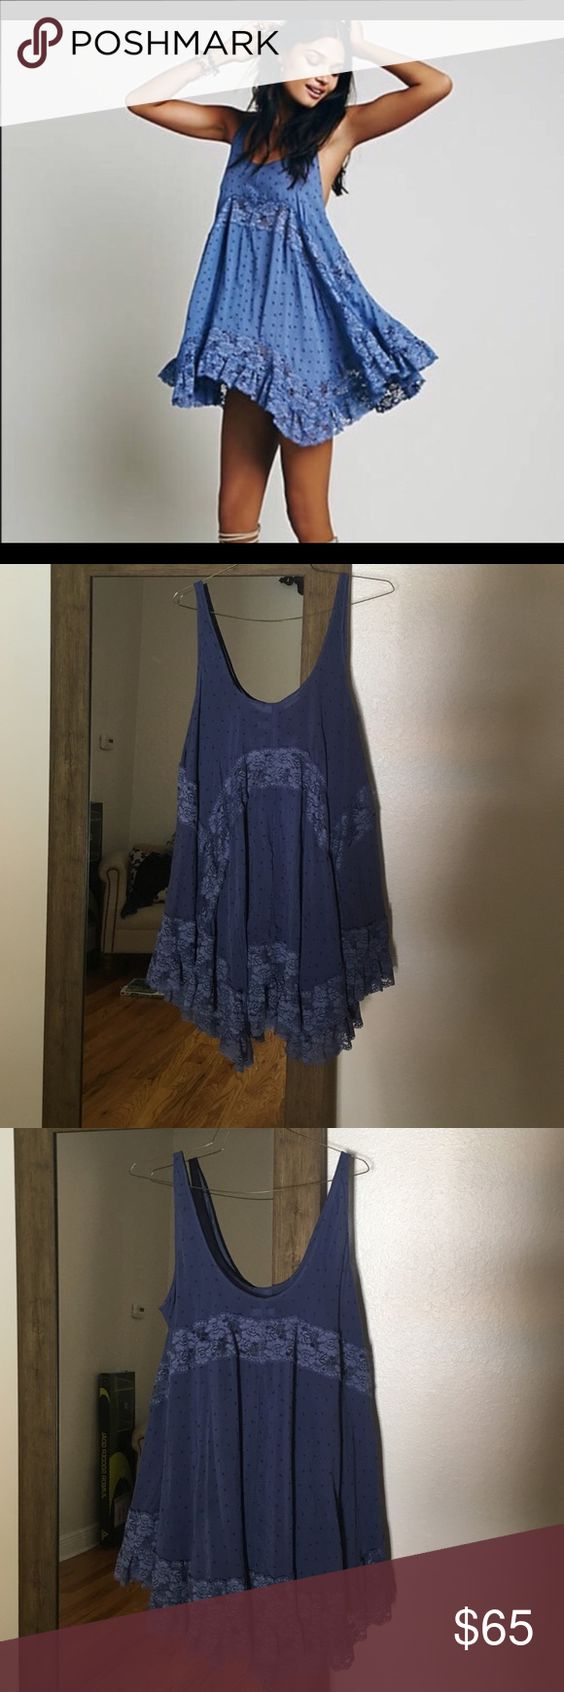 """Free people """"she swings"""" trapeze dress Sz small Like new only worn inside, too big , will trade for an extra small.  No rips or tears, purple color Free People Tops Tunics"""